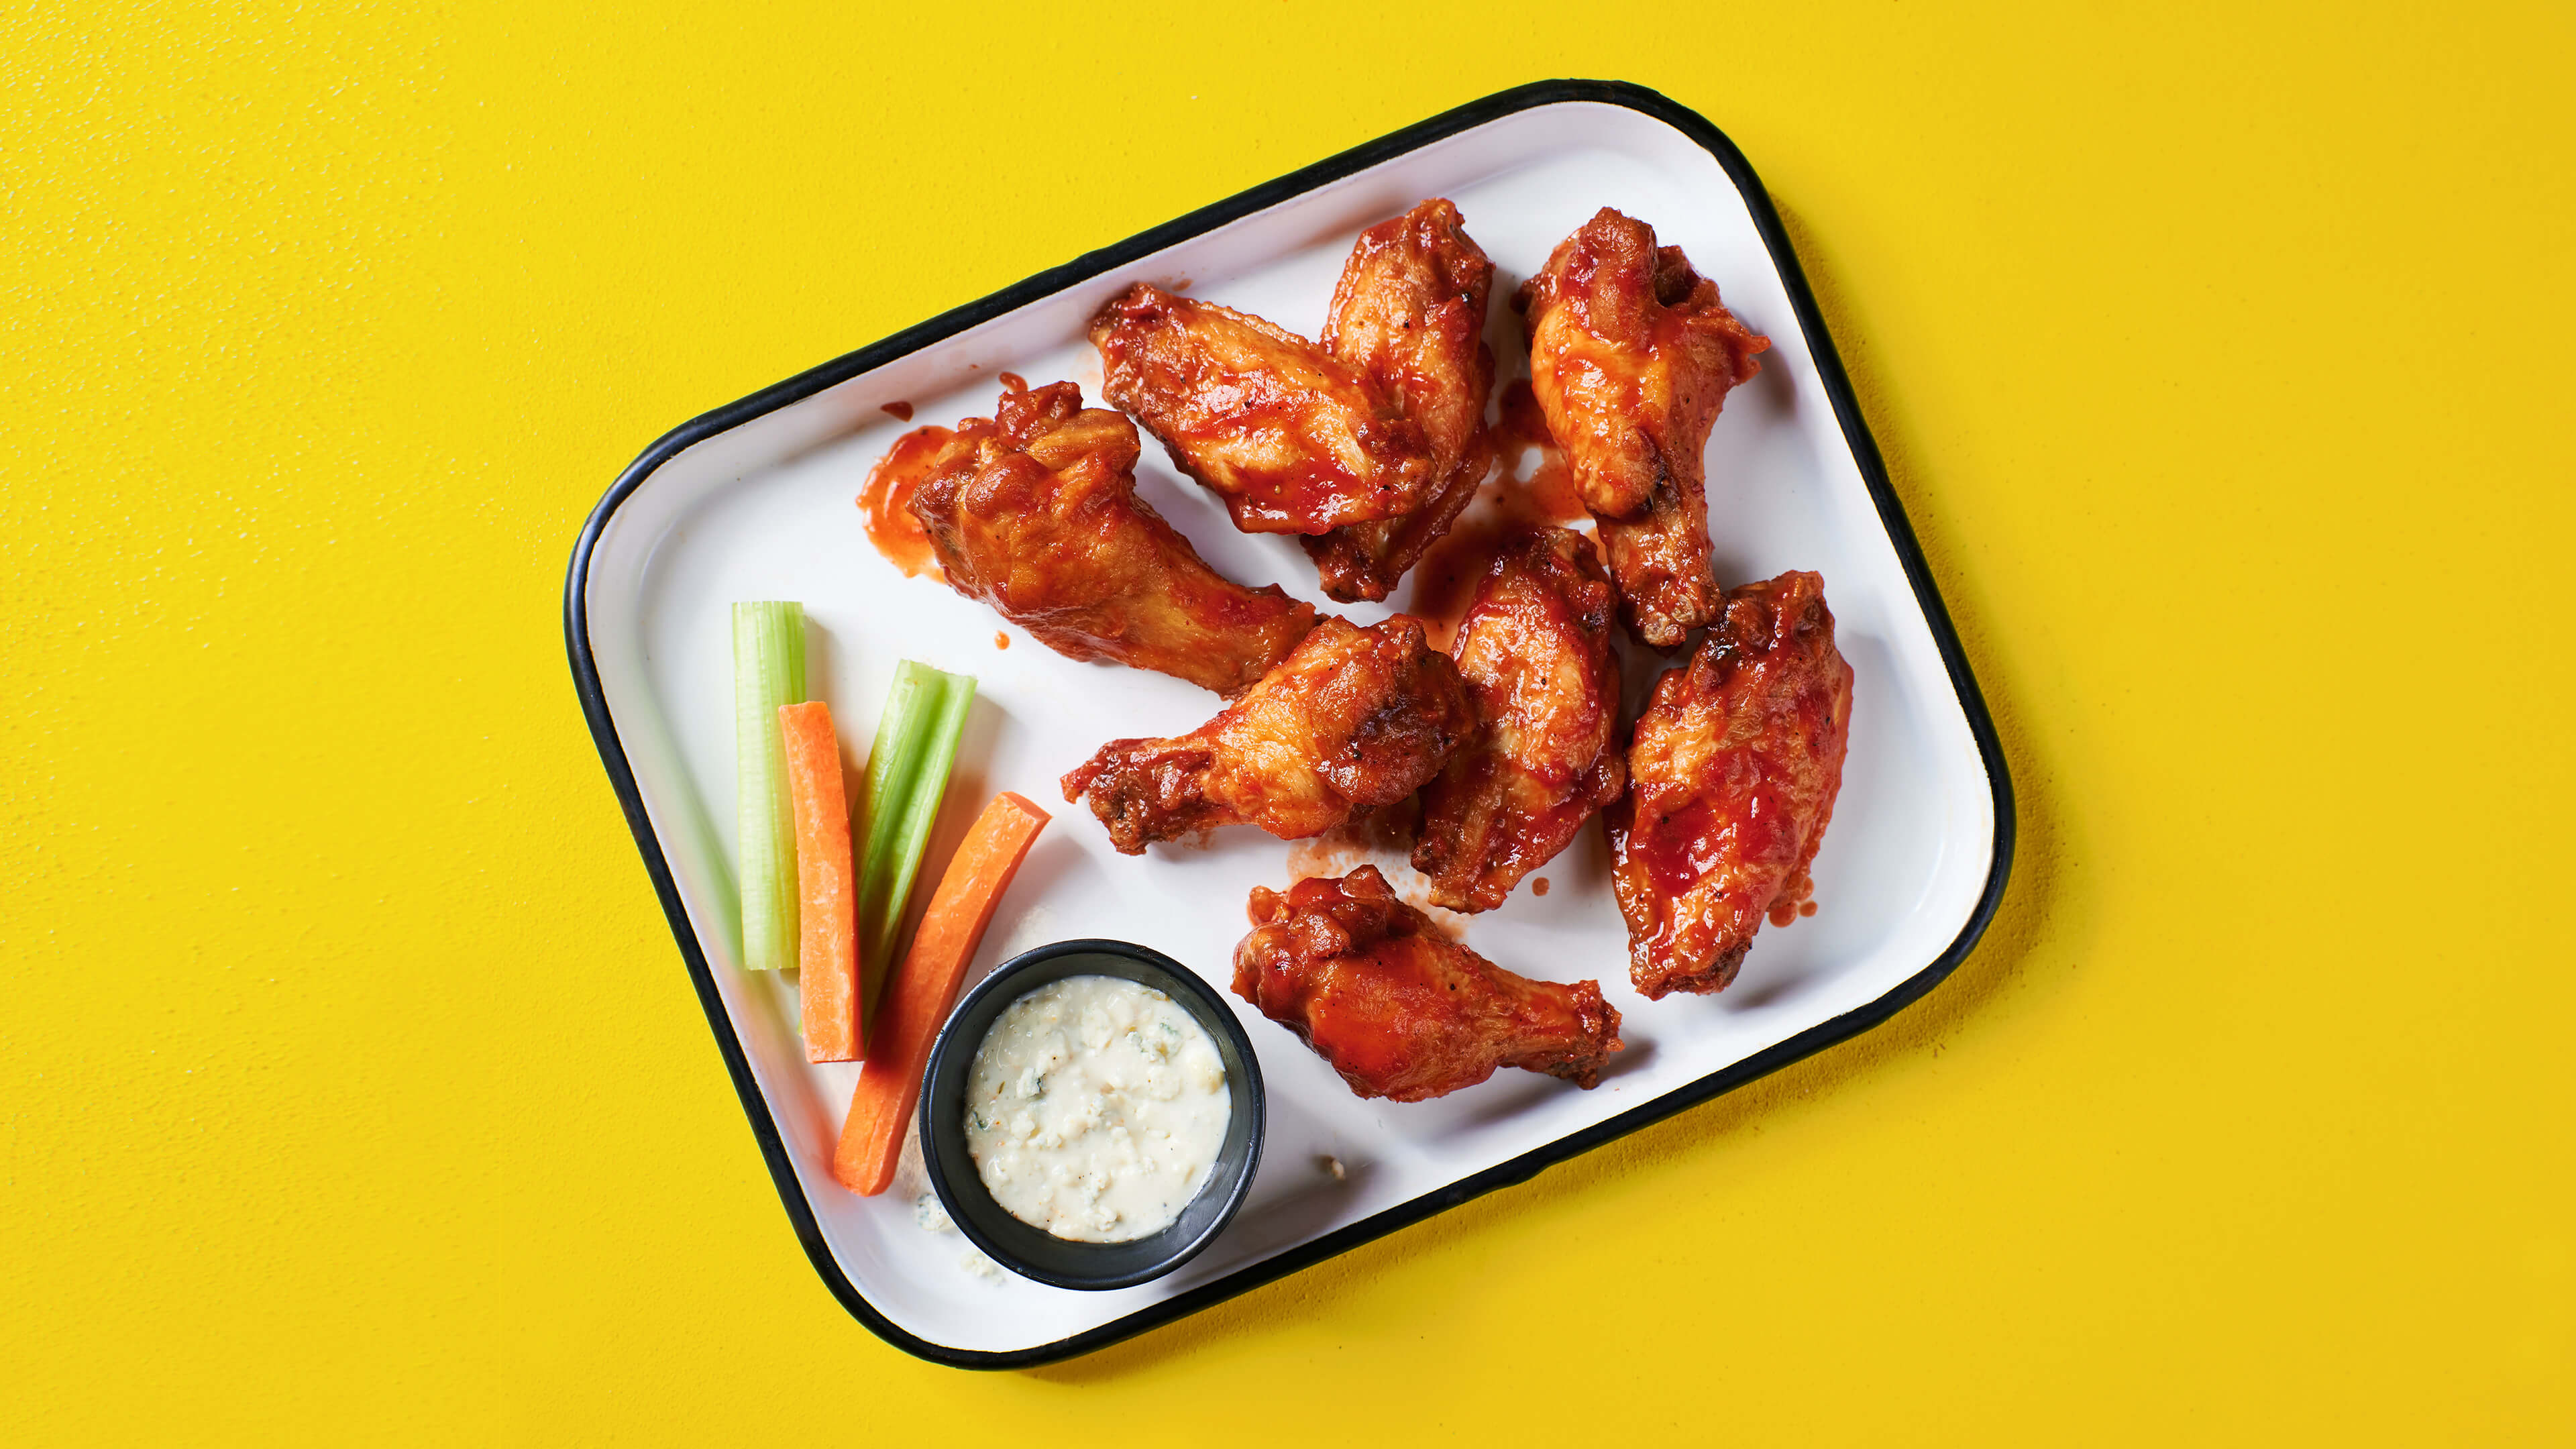 BIGGER BLAZIER BUFFALO WINGS - Big, spicy, juicy, meaty, tender and saucy buffalo wings, served with your choice of ranch or blue cheese, and crunchy celery and carrots for dipping.